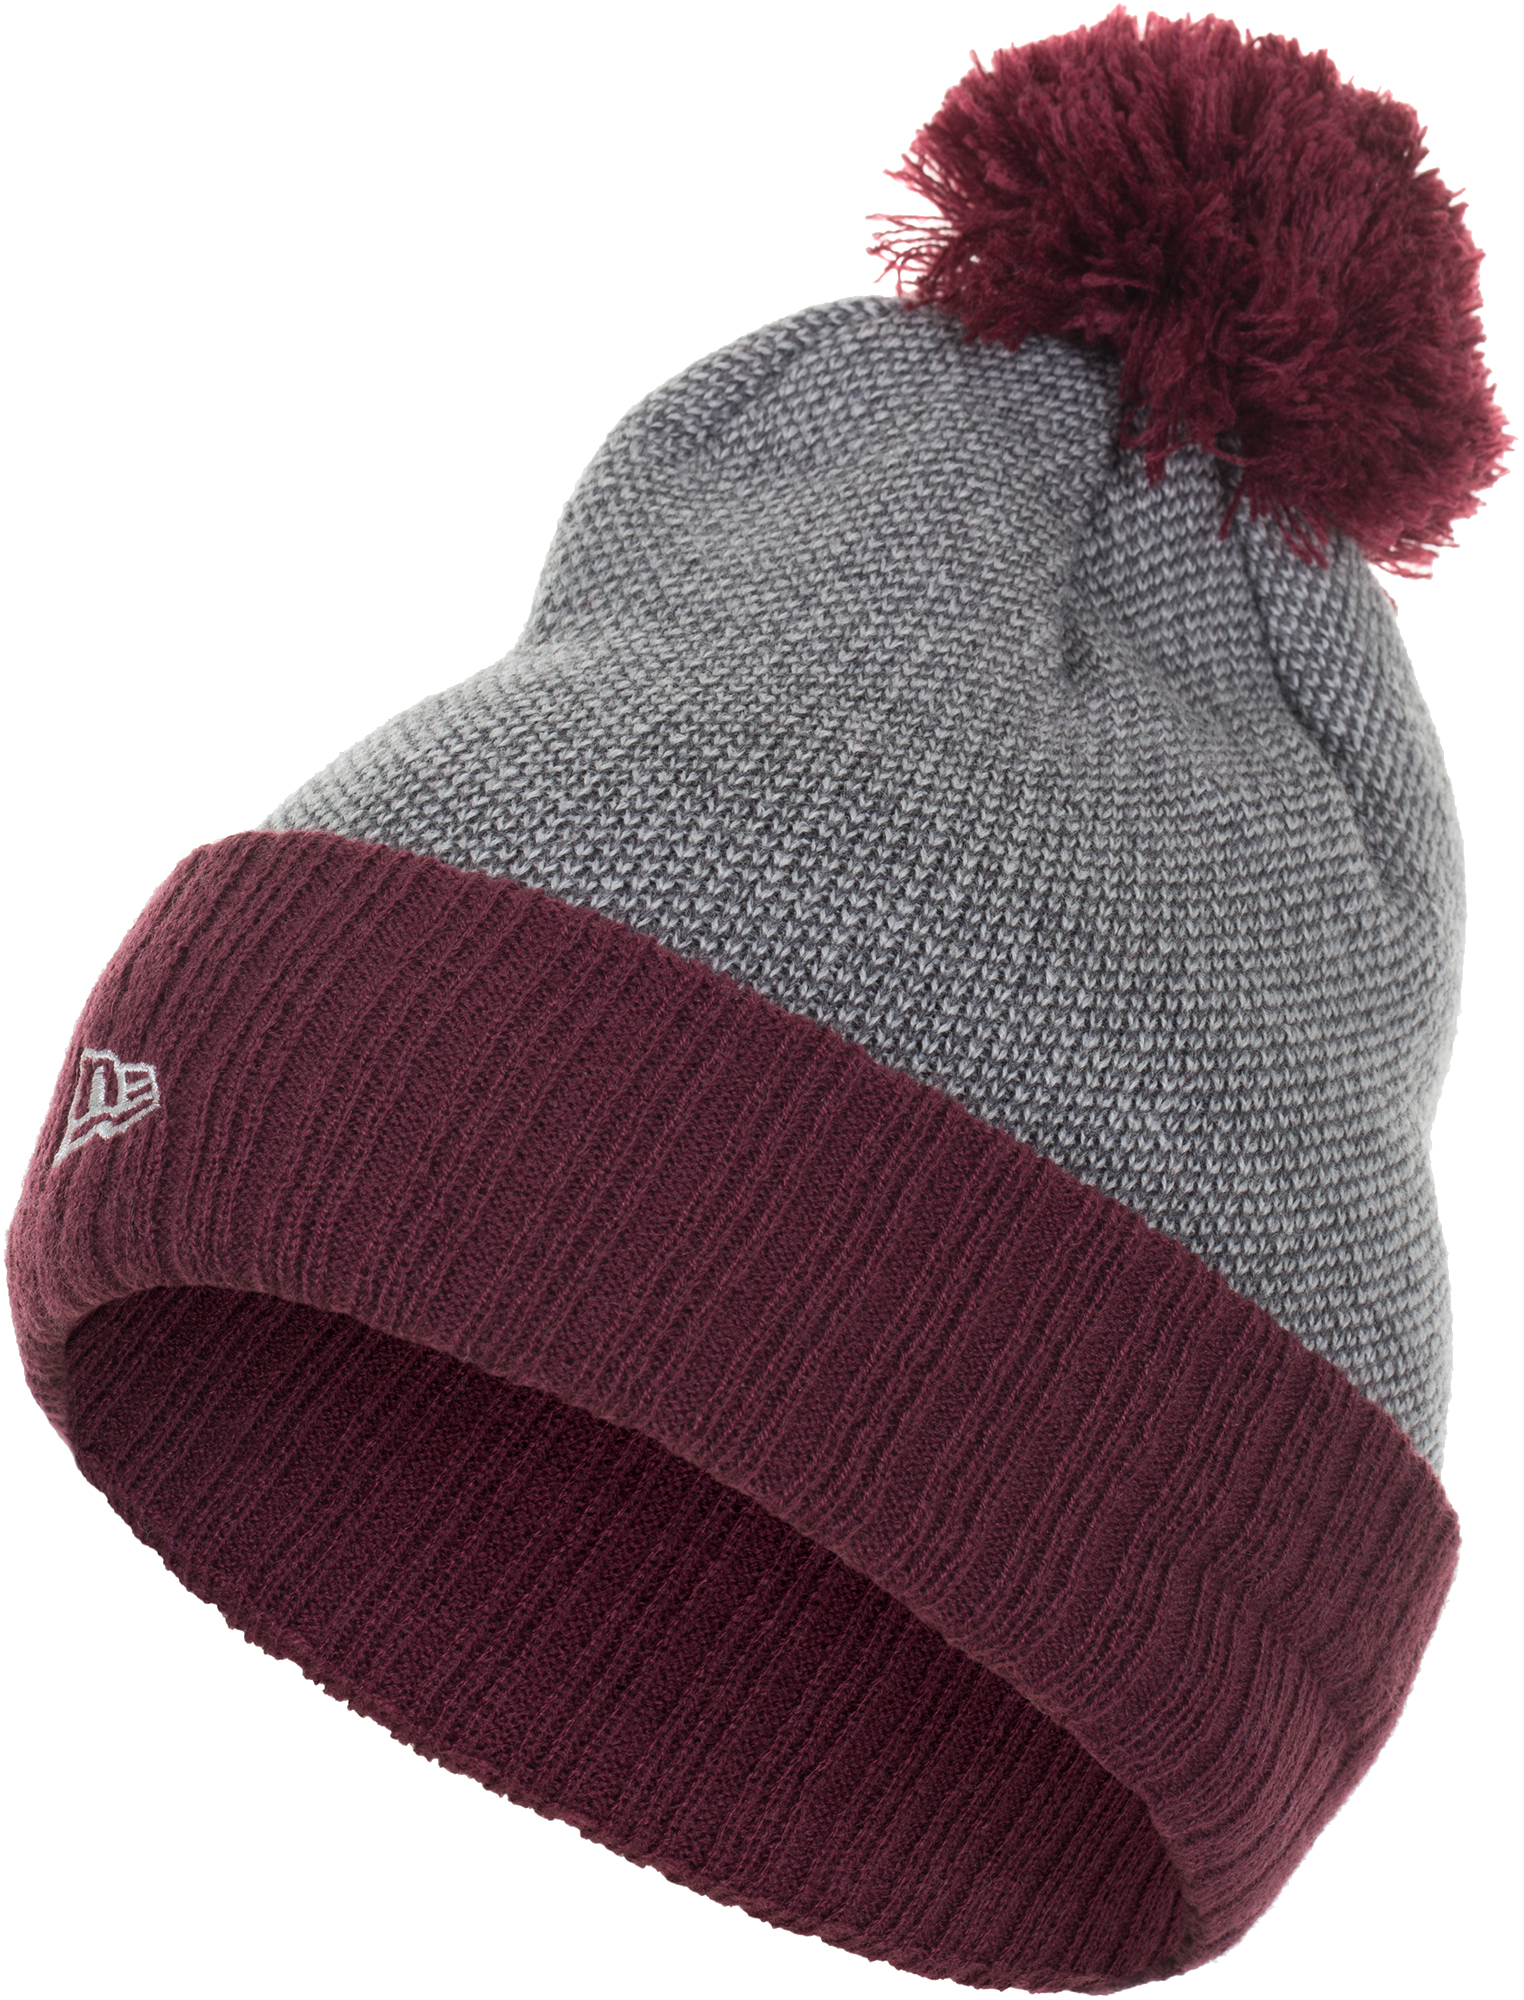 New Era Шапка New Era Lic 870 Heather Bobble цена